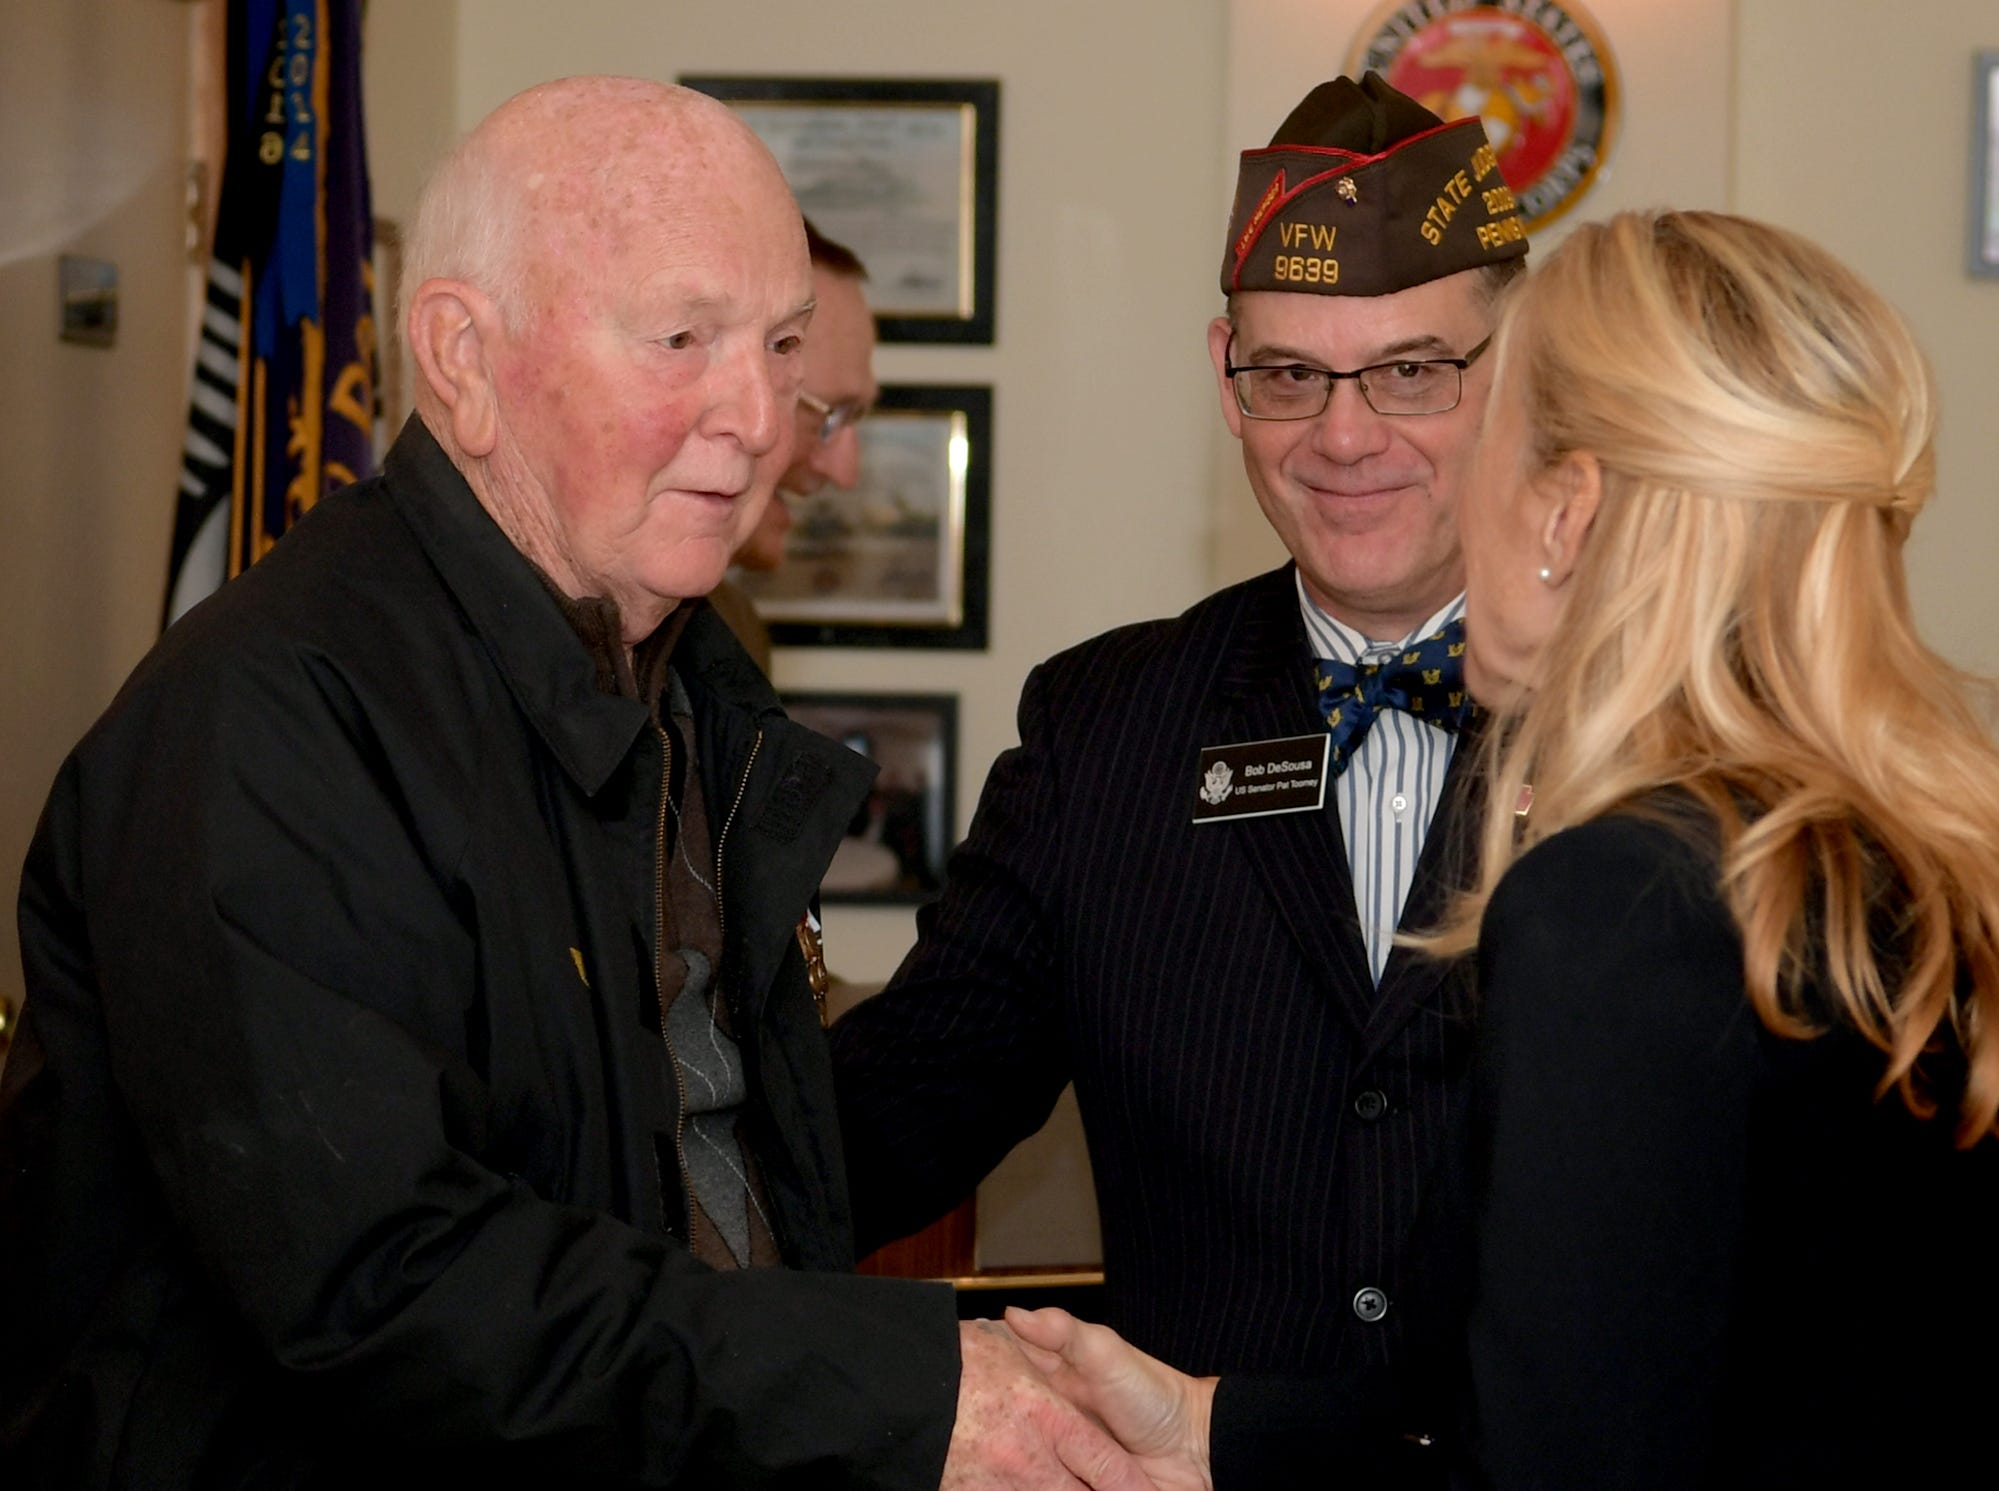 Area Korean War veterans received Ambassador for Peace Medals issued by the Korean government during a ceremony at the James A. Danner VFW Post #537 in Newberry Township Thursday, Sept. 27, 2018. The event was sponsored by PA State Representative Dawn Keefer in conjunction with U.S. Senator Pat Toomey's office, which assisted in procuring the medals. Bill Kalina photo